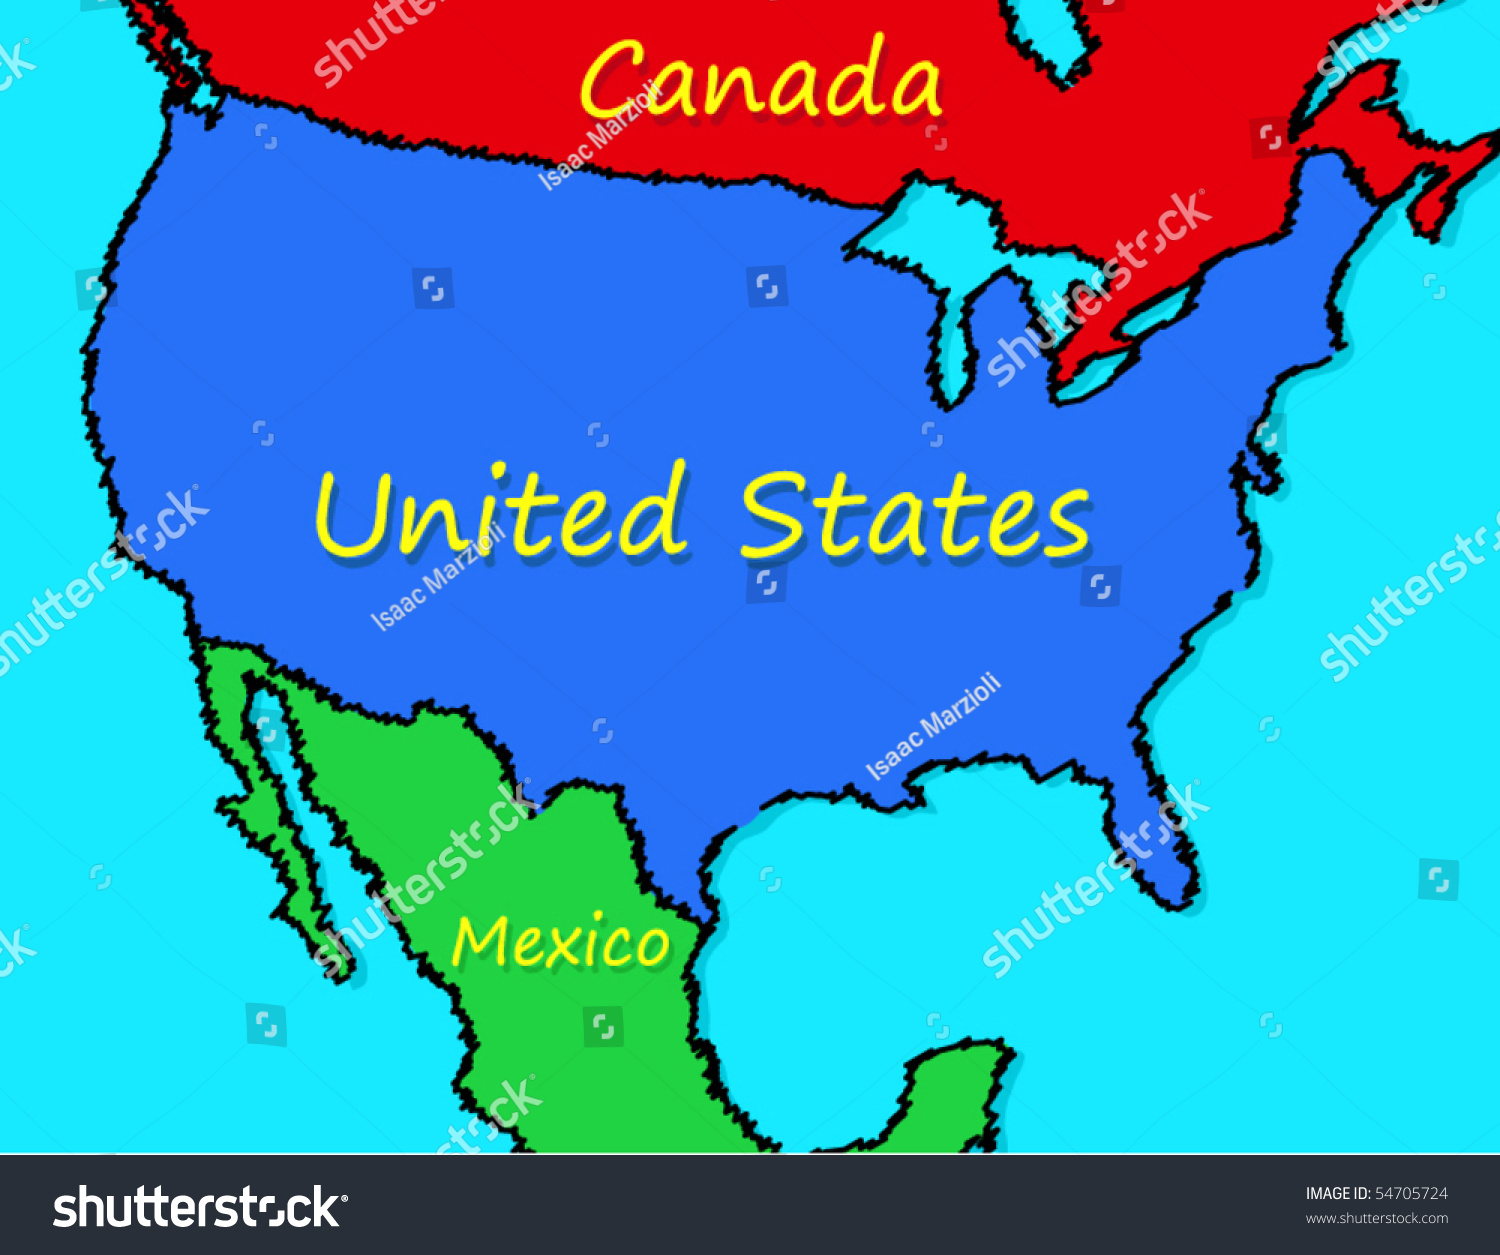 map of south united states.html with Stock Vector Cartoon Map Of The United States on State Research Websites also Map Of Indian States With Each States together with Map Of Australia With Cities And States likewise German City Names In United States as well Midwest Map With Cities.